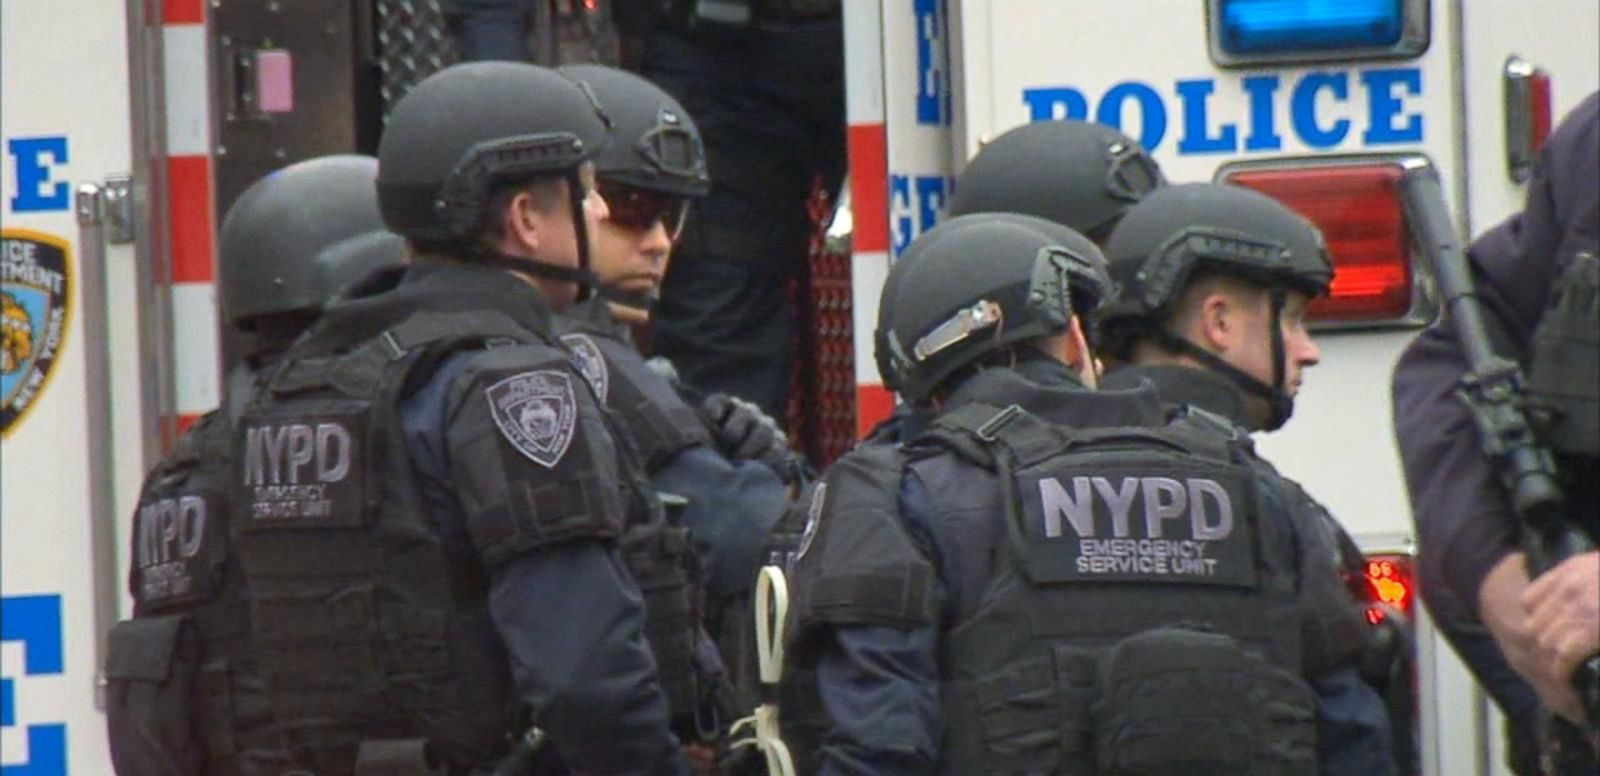 VIDEO: Police Departments Ramp Up Security After NYPD Shooting